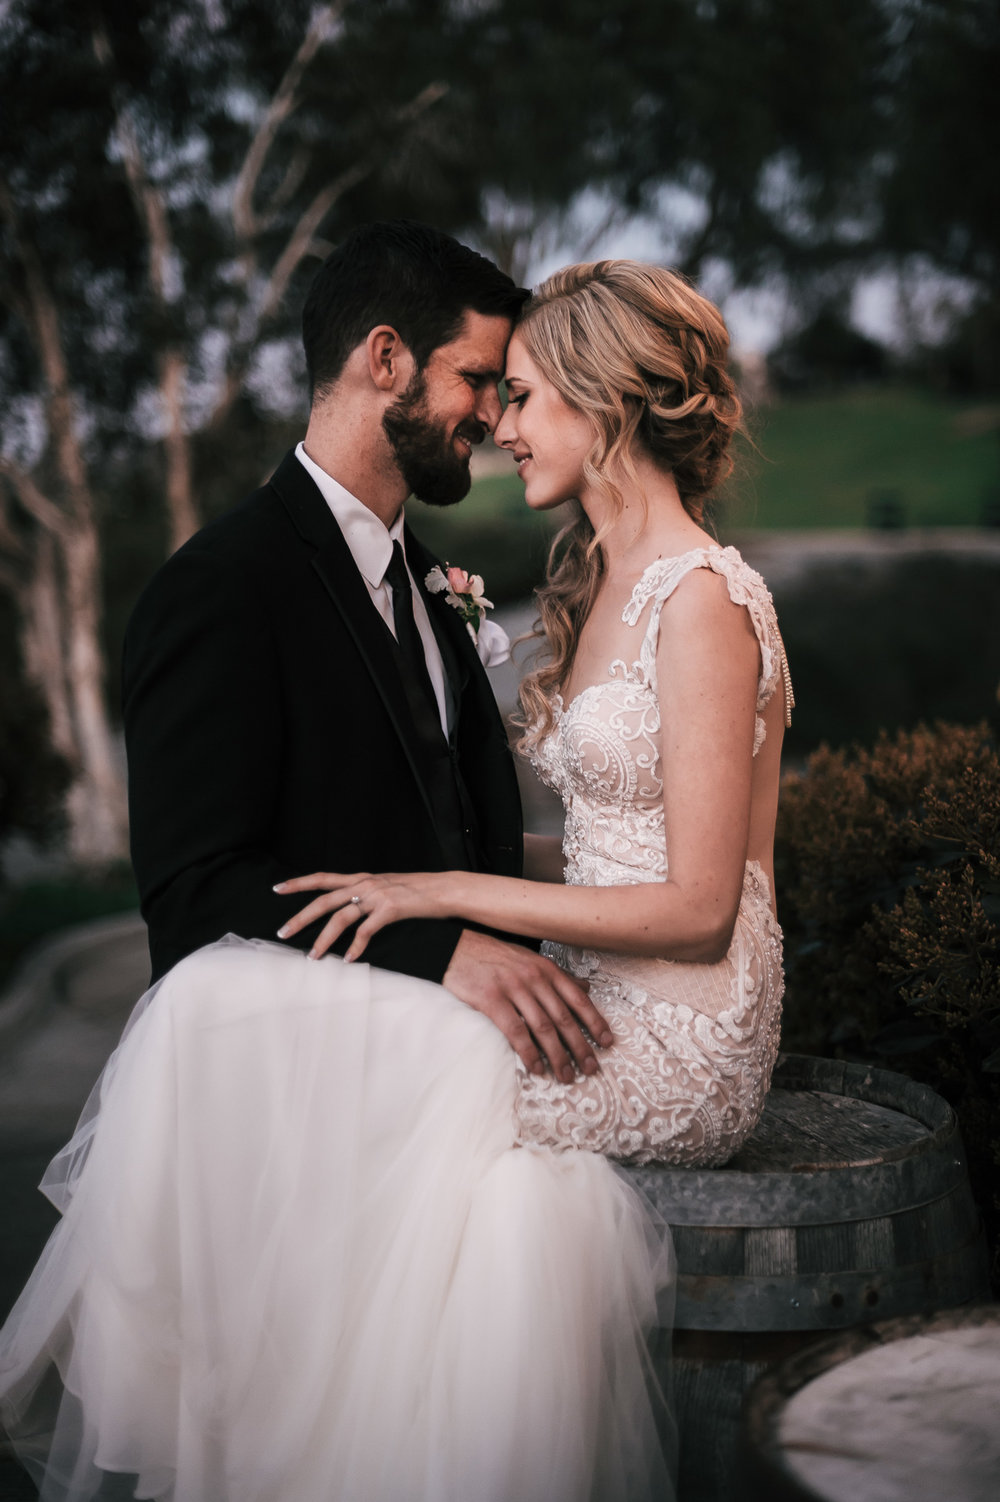 romantic wedding photography at the Twin Oaks Golf Course in San Marcos, San Diegos premier wedding venue